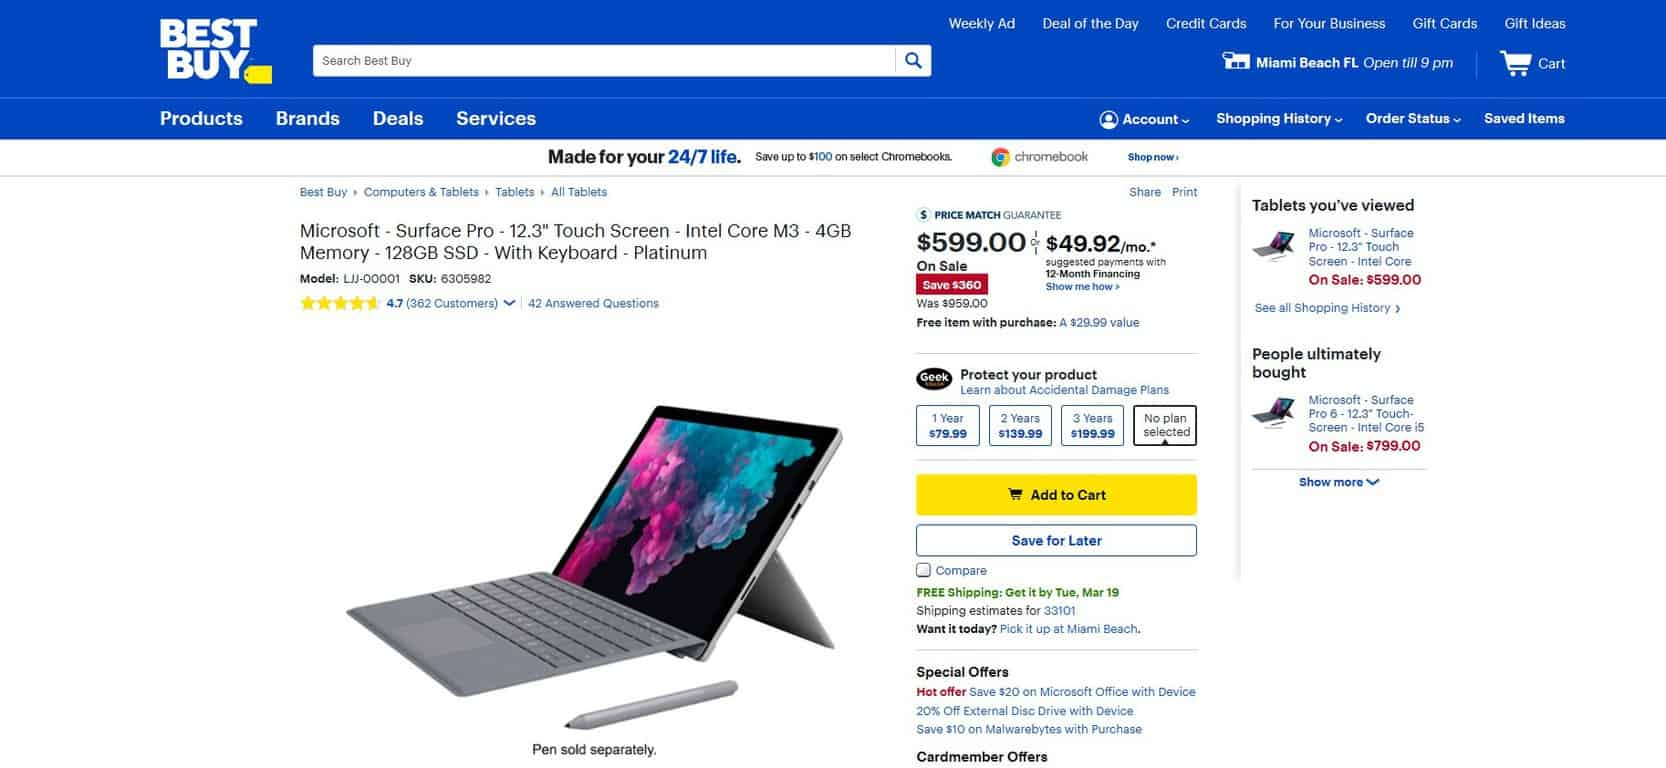 Latest surface pro, with keyboard, available today from best buy for $360 off - onmsft. Com - march 18, 2019